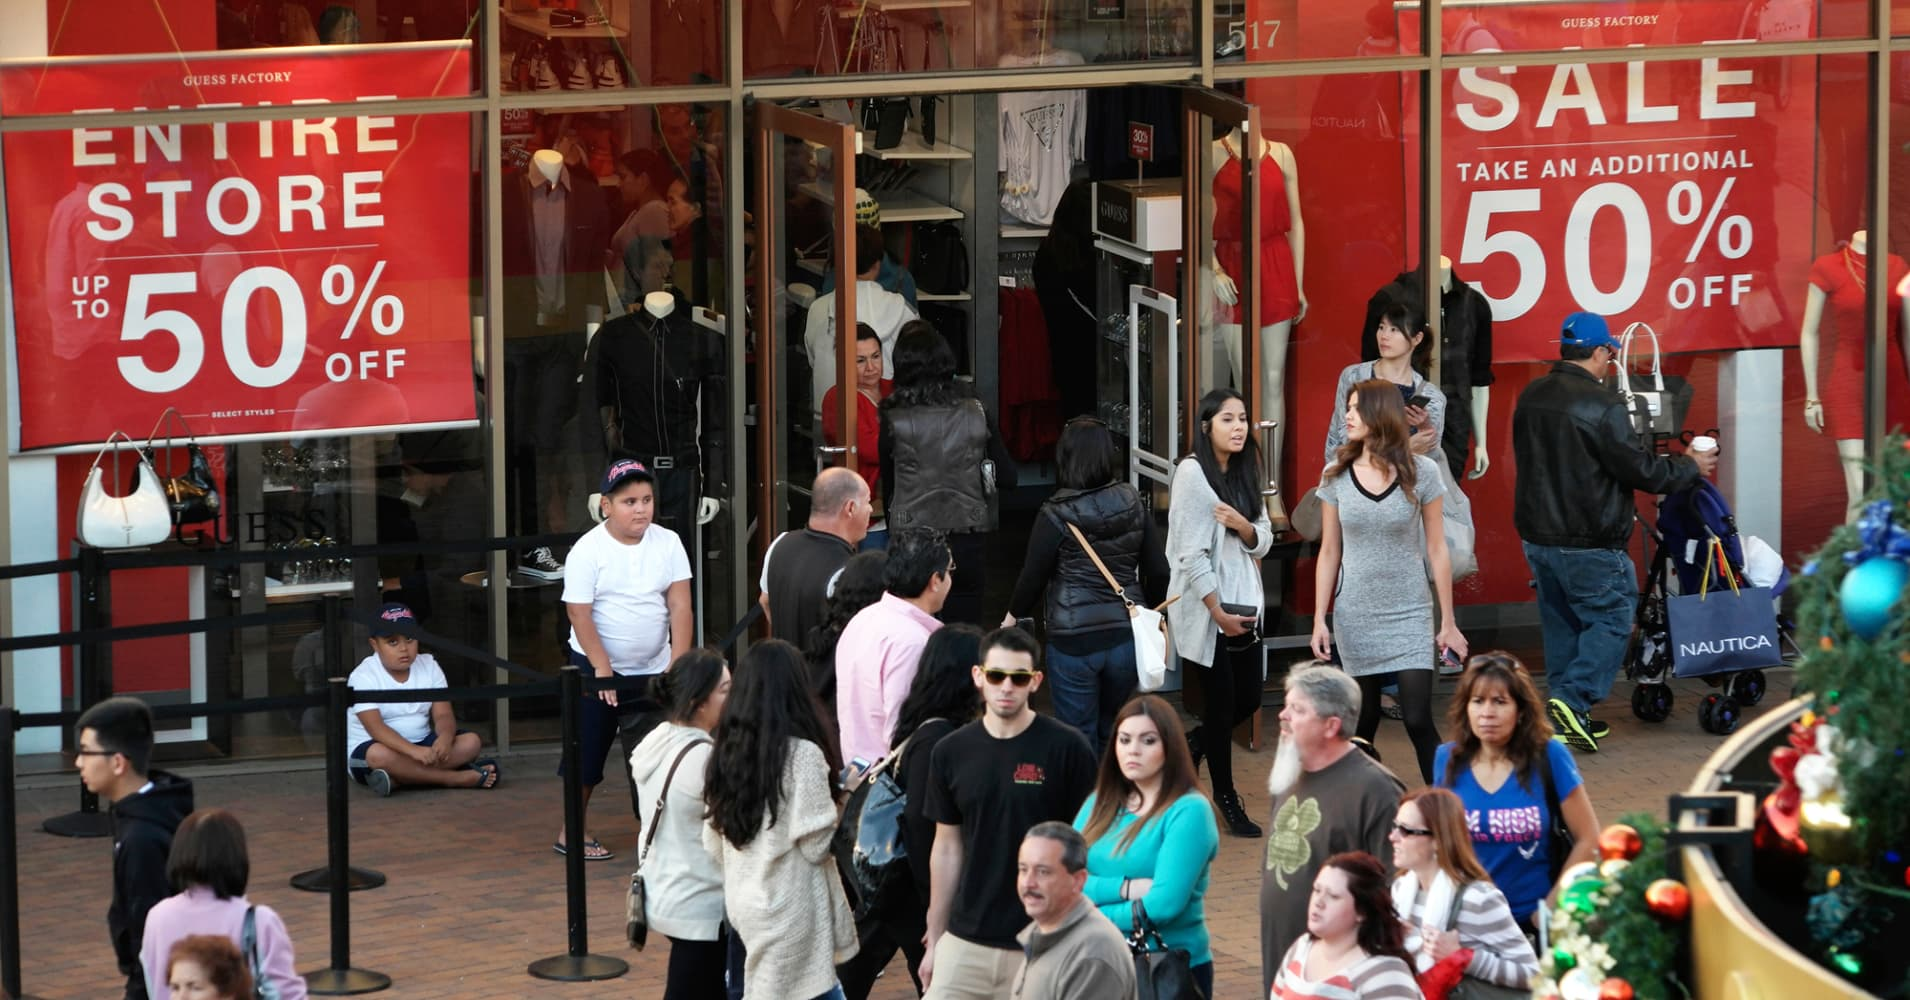 Retail fraud is on the rise as companies grapple for solutions